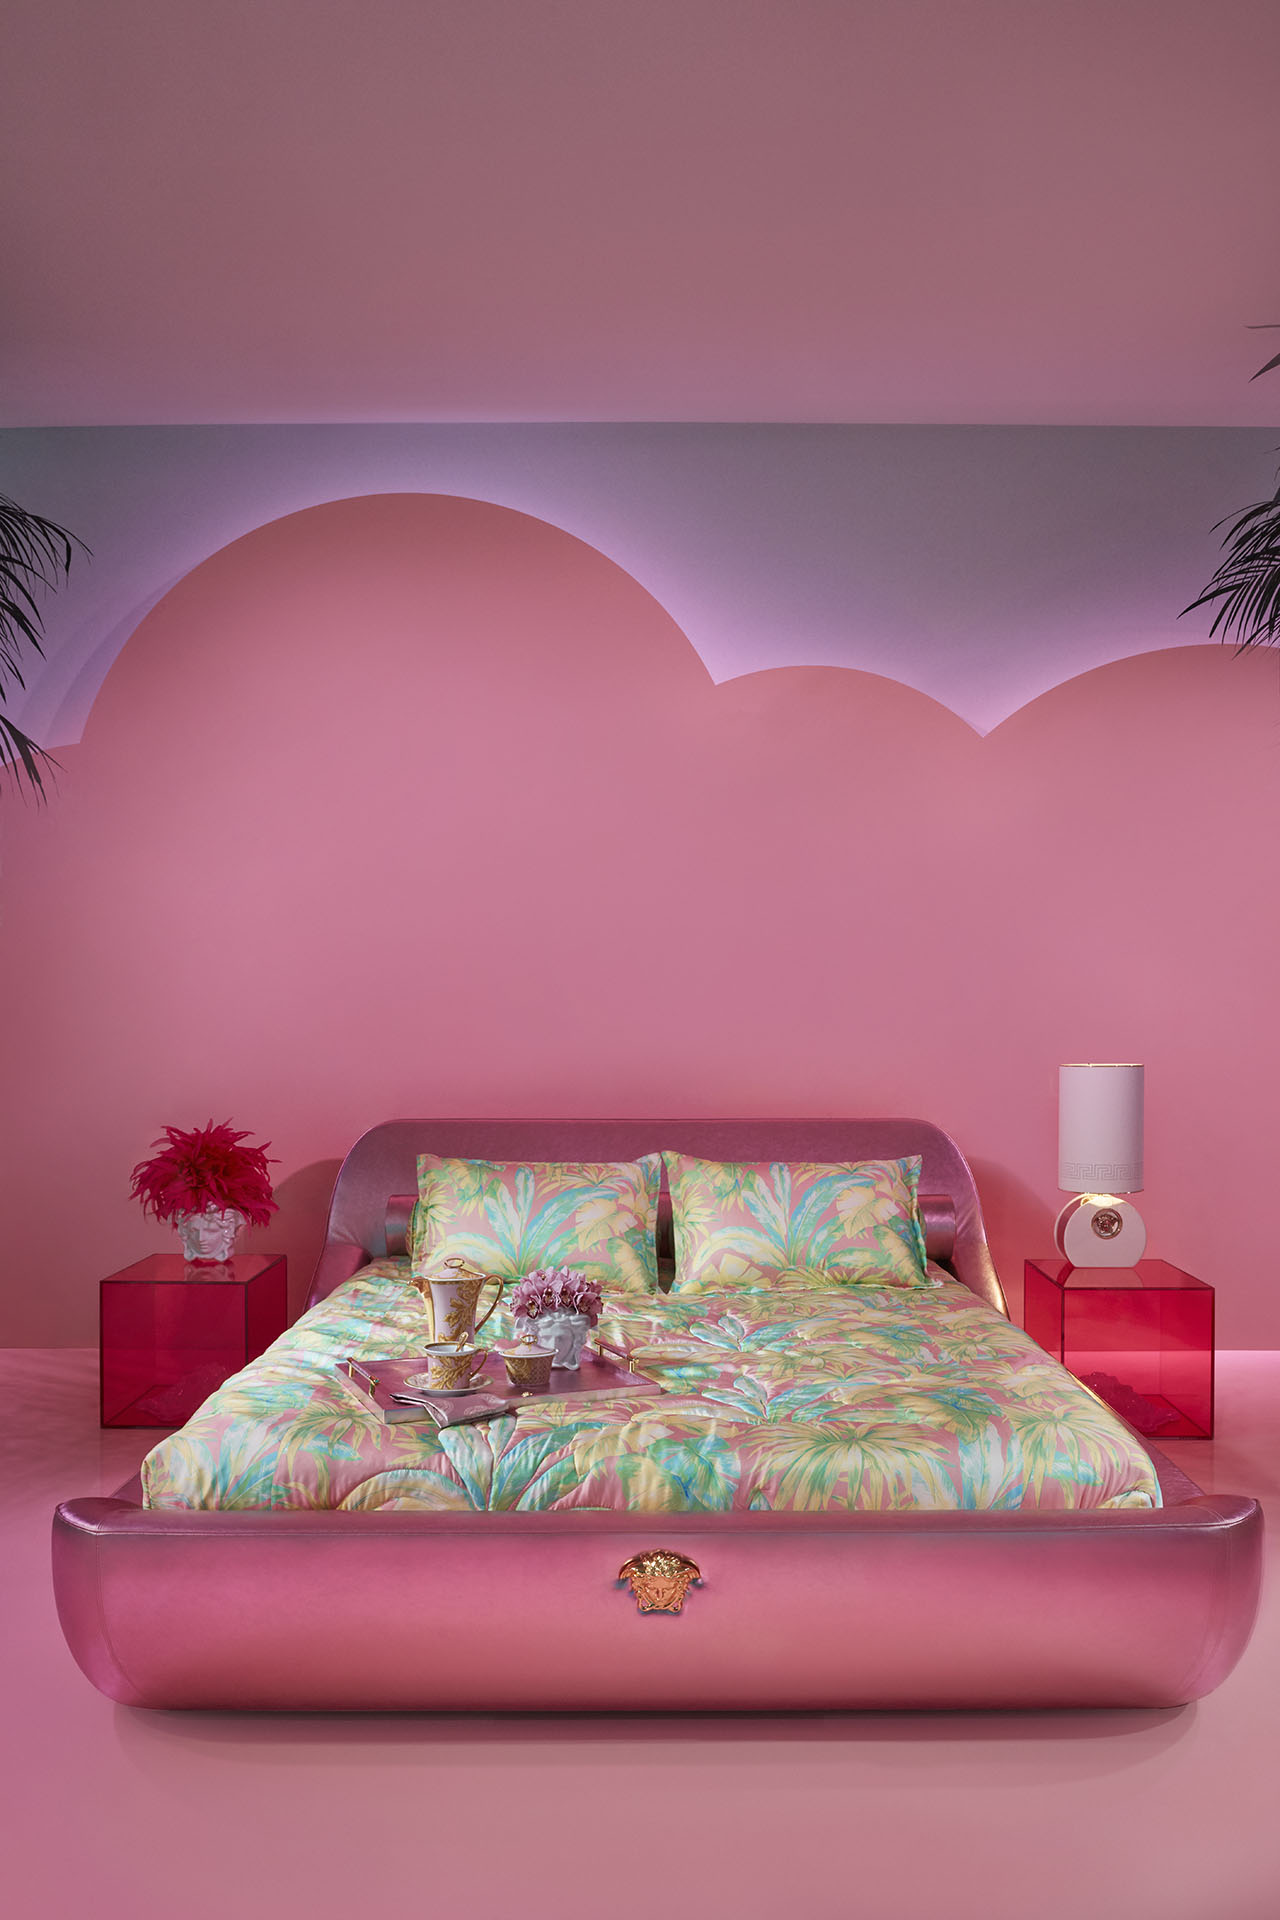 For the exhibition of the new 2019 Versace Home Collection in Via Gesù, Versace has collaborated with interior designer Sasha Bikoff and artist Andy Dixon. Photo © Versace.